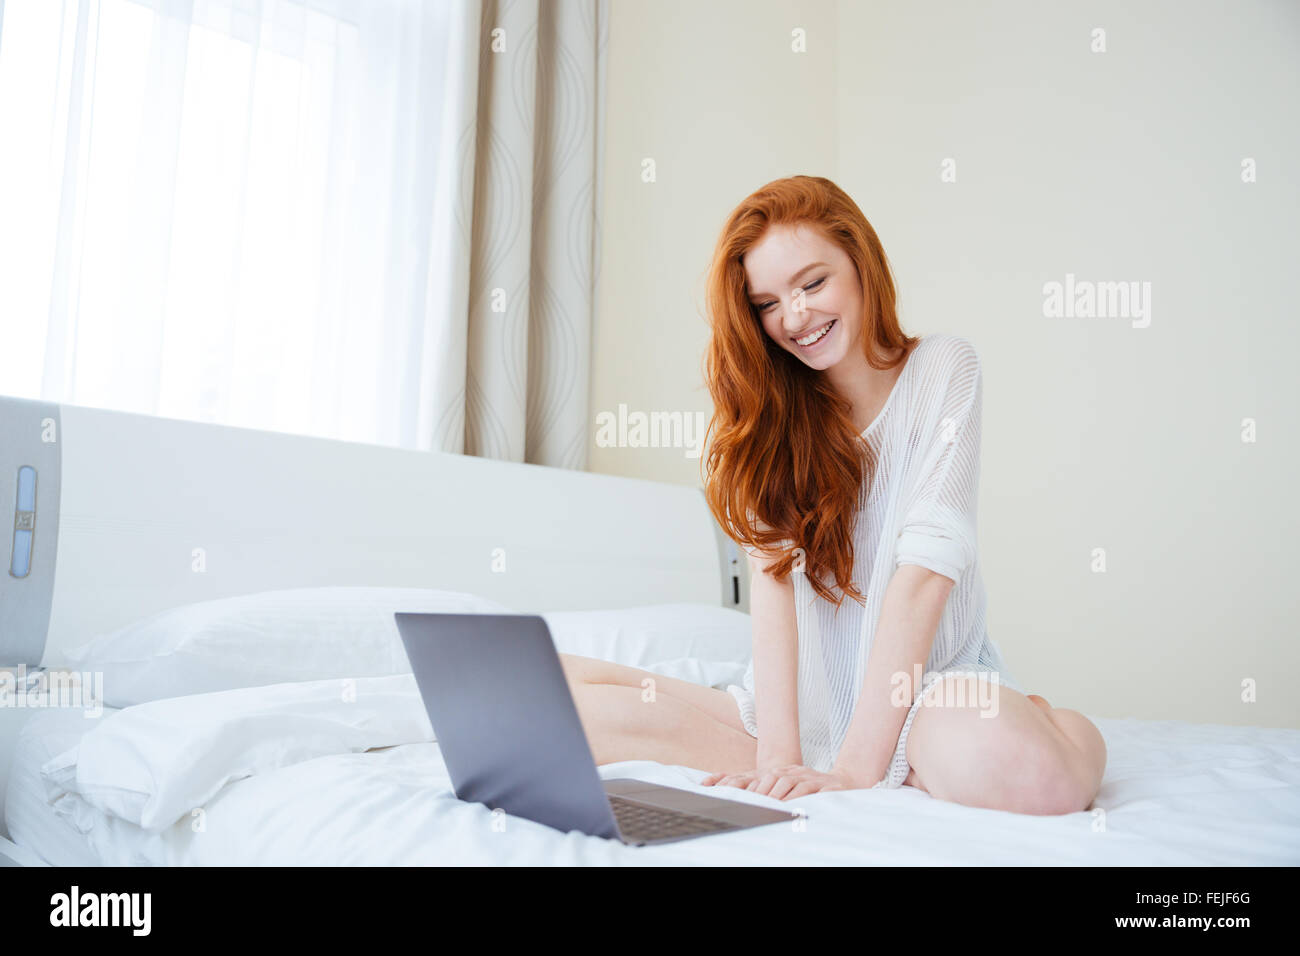 Redhead women in bed